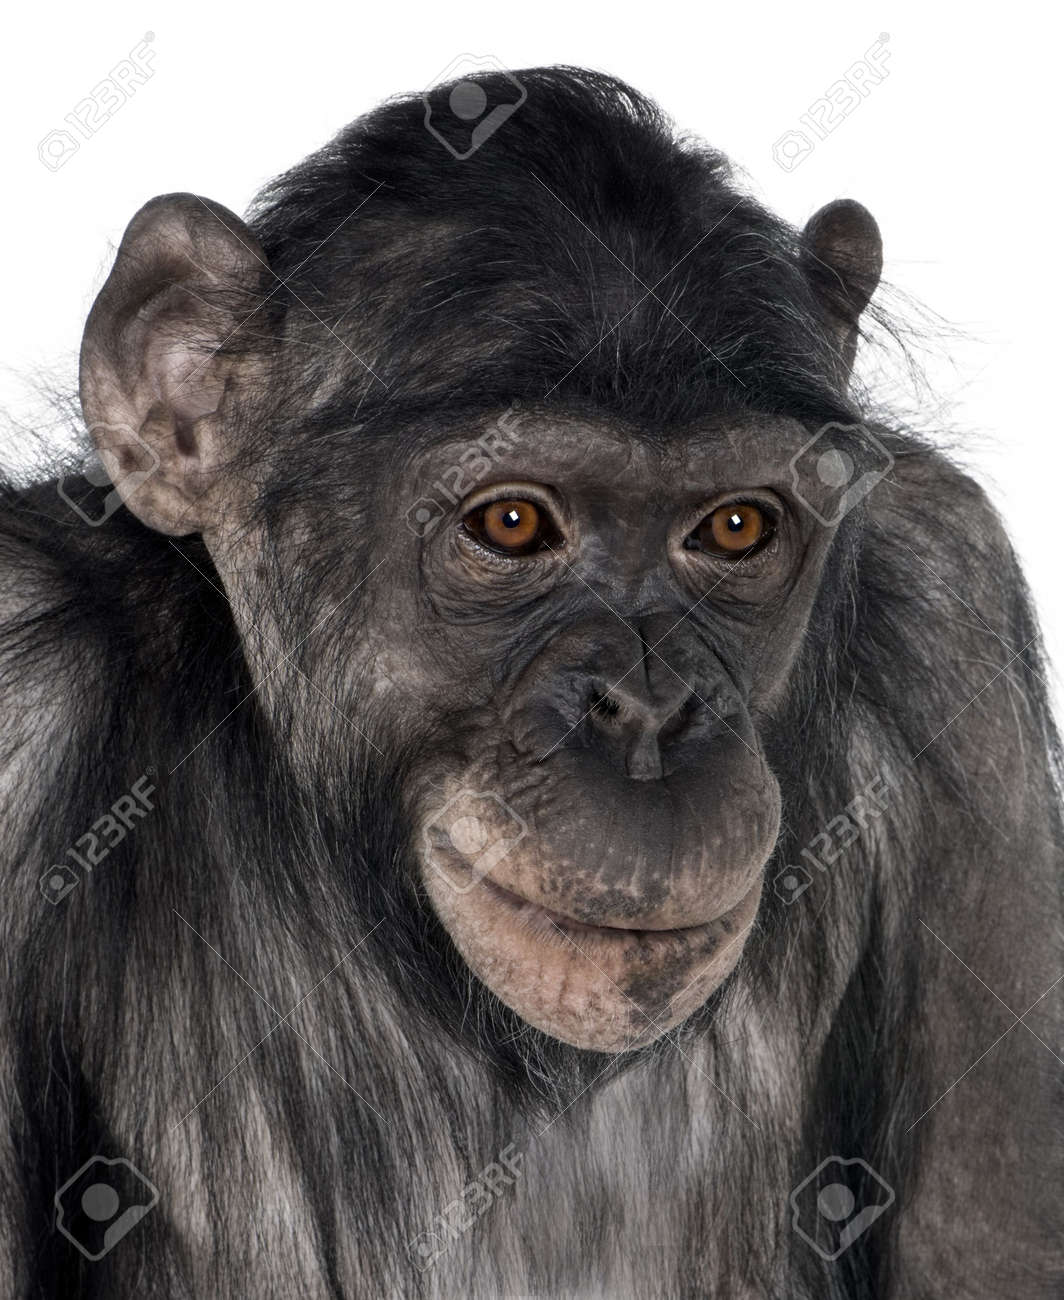 close-up on a monkey's head (Mixed-Breed between Chimpanzee and Bonobo) (8 years old) Stock Photo - 5569770